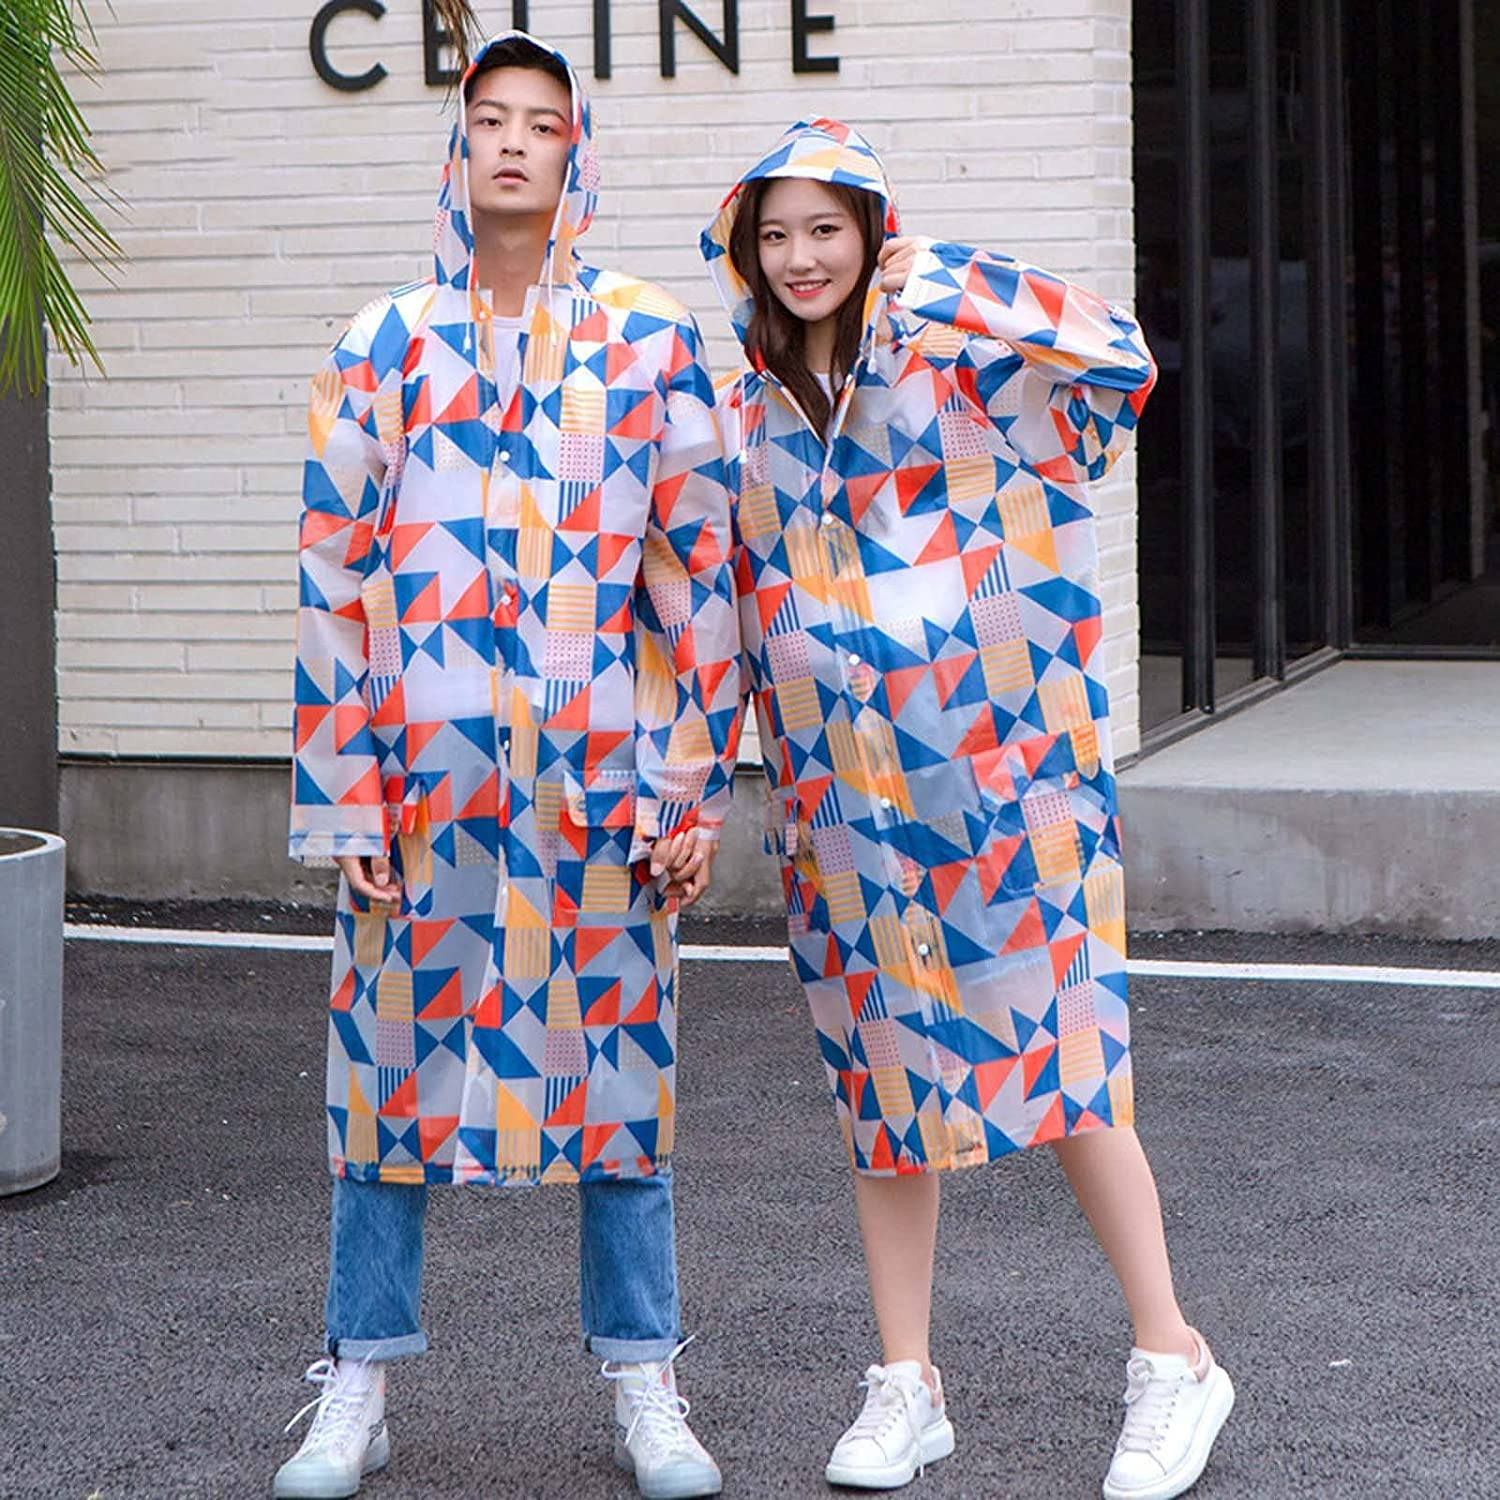 FHGH EVA Couples Long Raincoat Triangle Pattern A 2PCS Ranking TOP13 Geometry Max 82% OFF